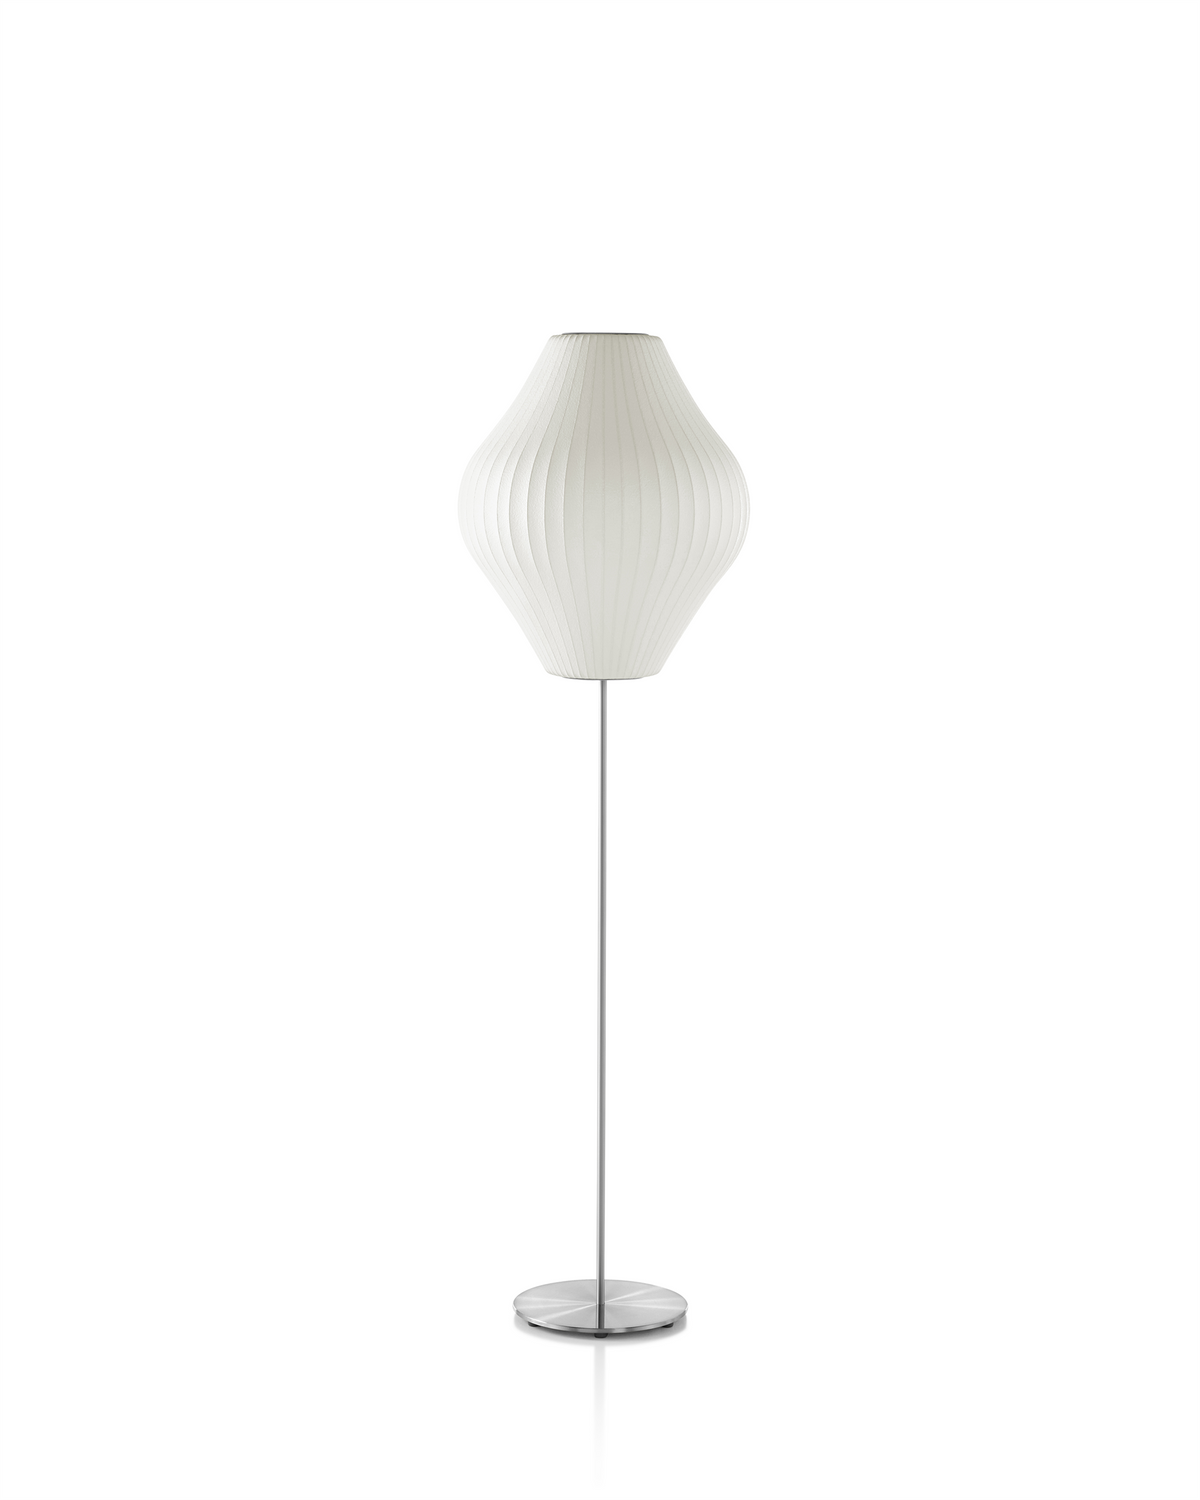 Nelson Pear Floor Lamp